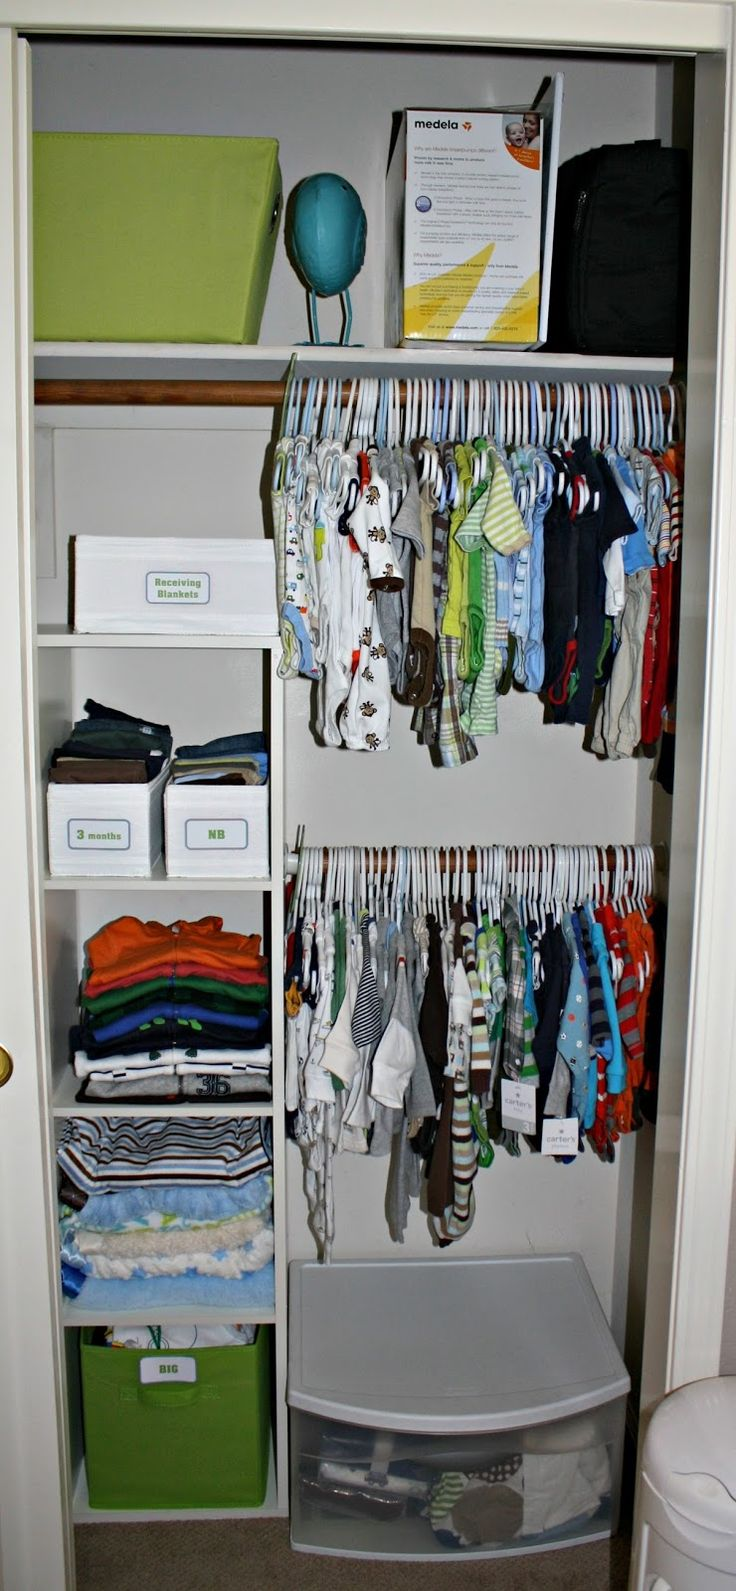 "What I want for our closet"" Two Hanger Rods Built-In Pull-Out Laundry Hamper, with removable laundry sack Shelves and space for bins"